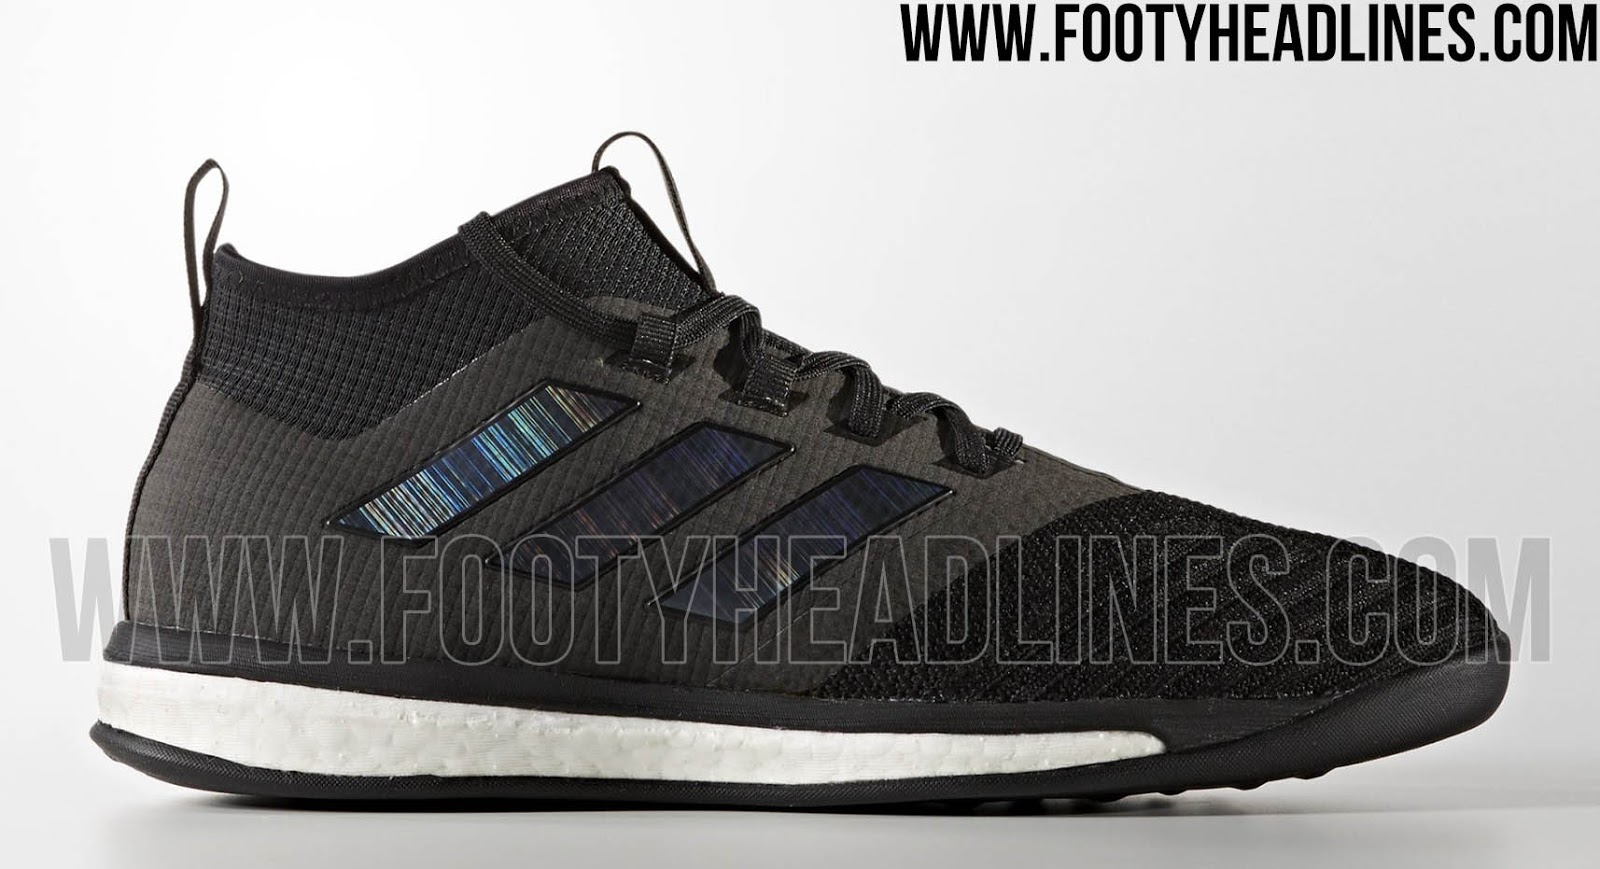 adidas ace tango 17 1 magnetic storm shoes released. Black Bedroom Furniture Sets. Home Design Ideas